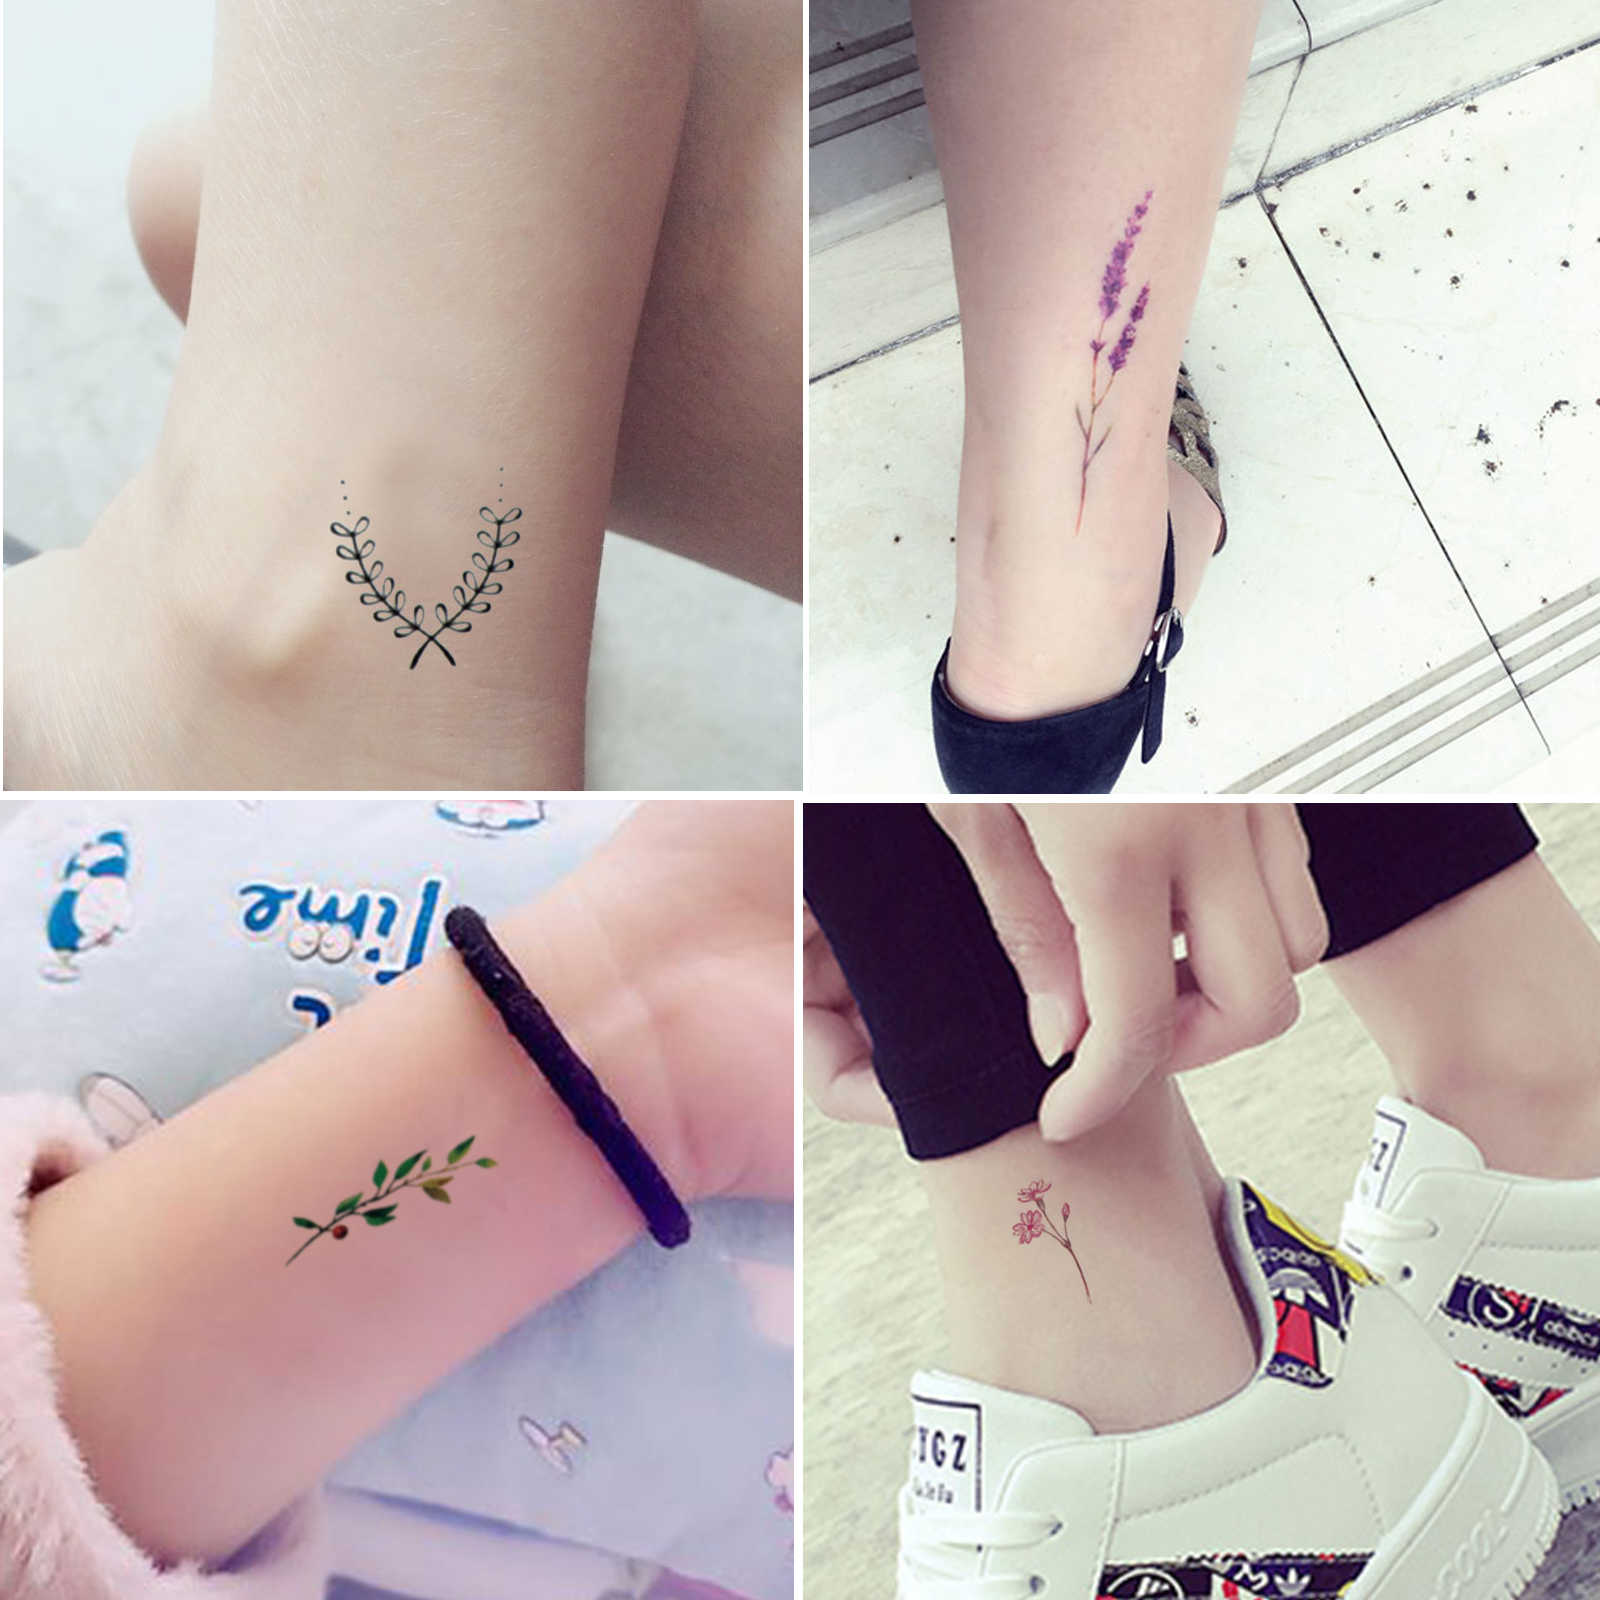 4 PCs Original Lavender Olive branch flower Fake Tattoo Waterproof Temporary Arm Tatoo Stickers For Women Men Body Art Tattoos